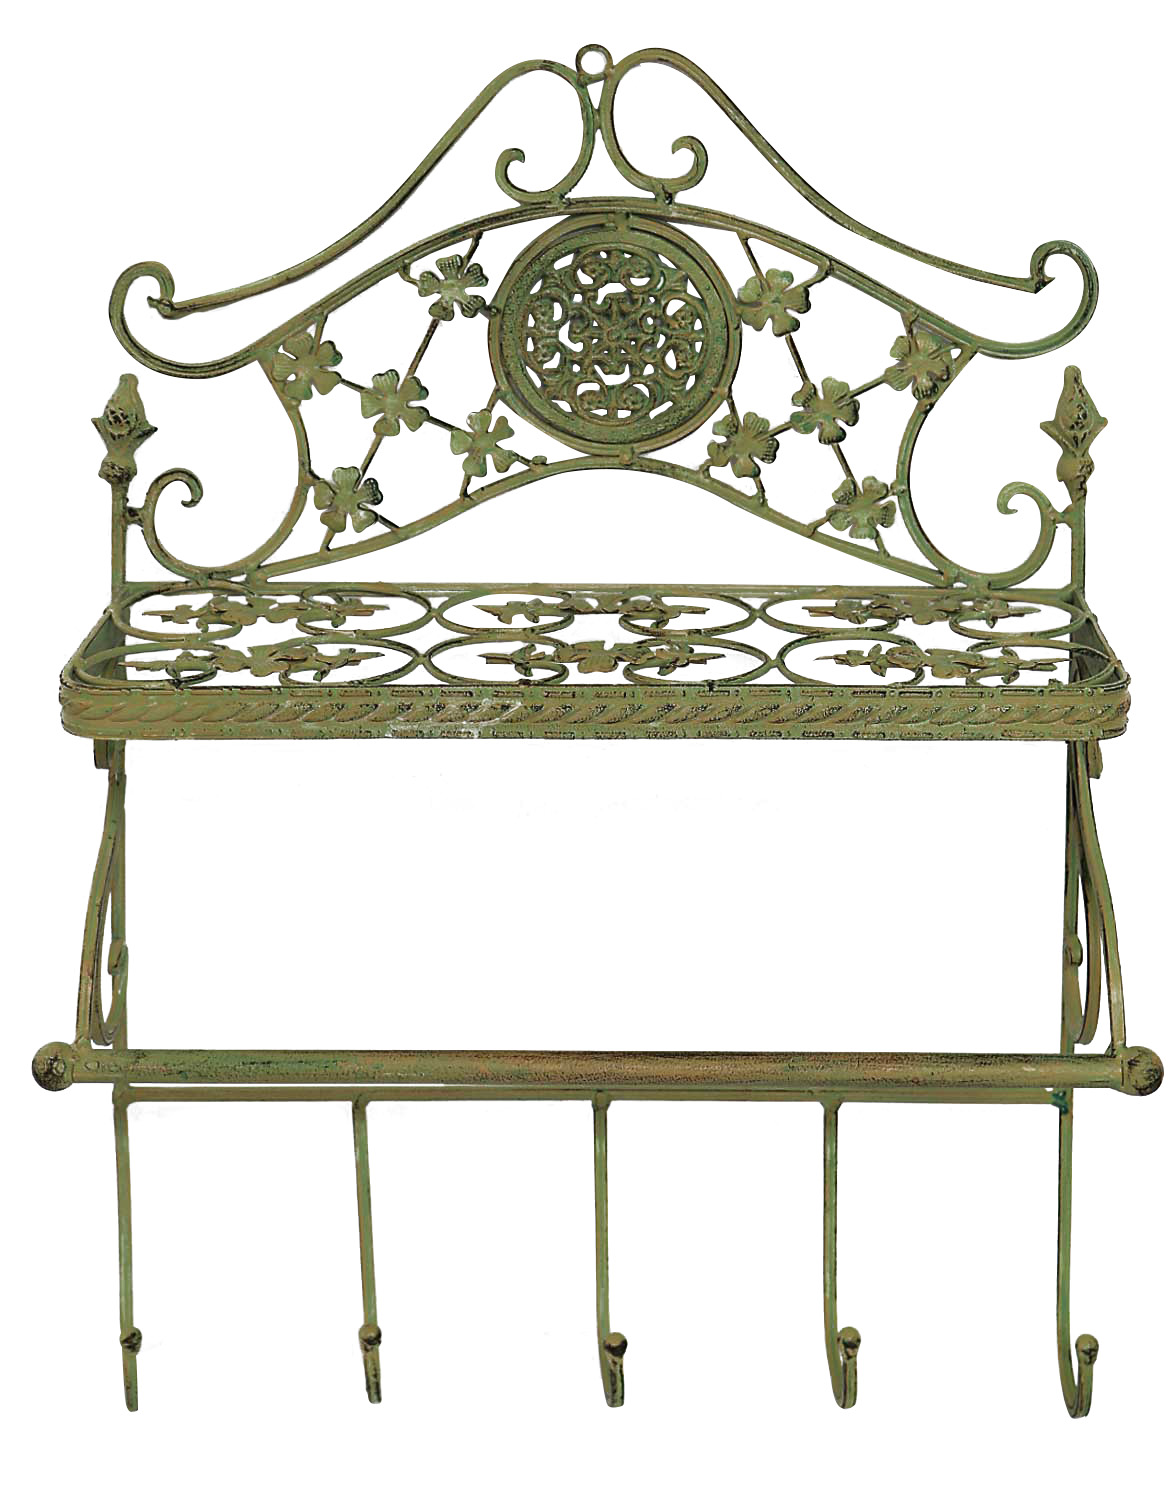 mur garde robe fer murale style antique vert jardin portemanteaux vestiaire aubaho. Black Bedroom Furniture Sets. Home Design Ideas